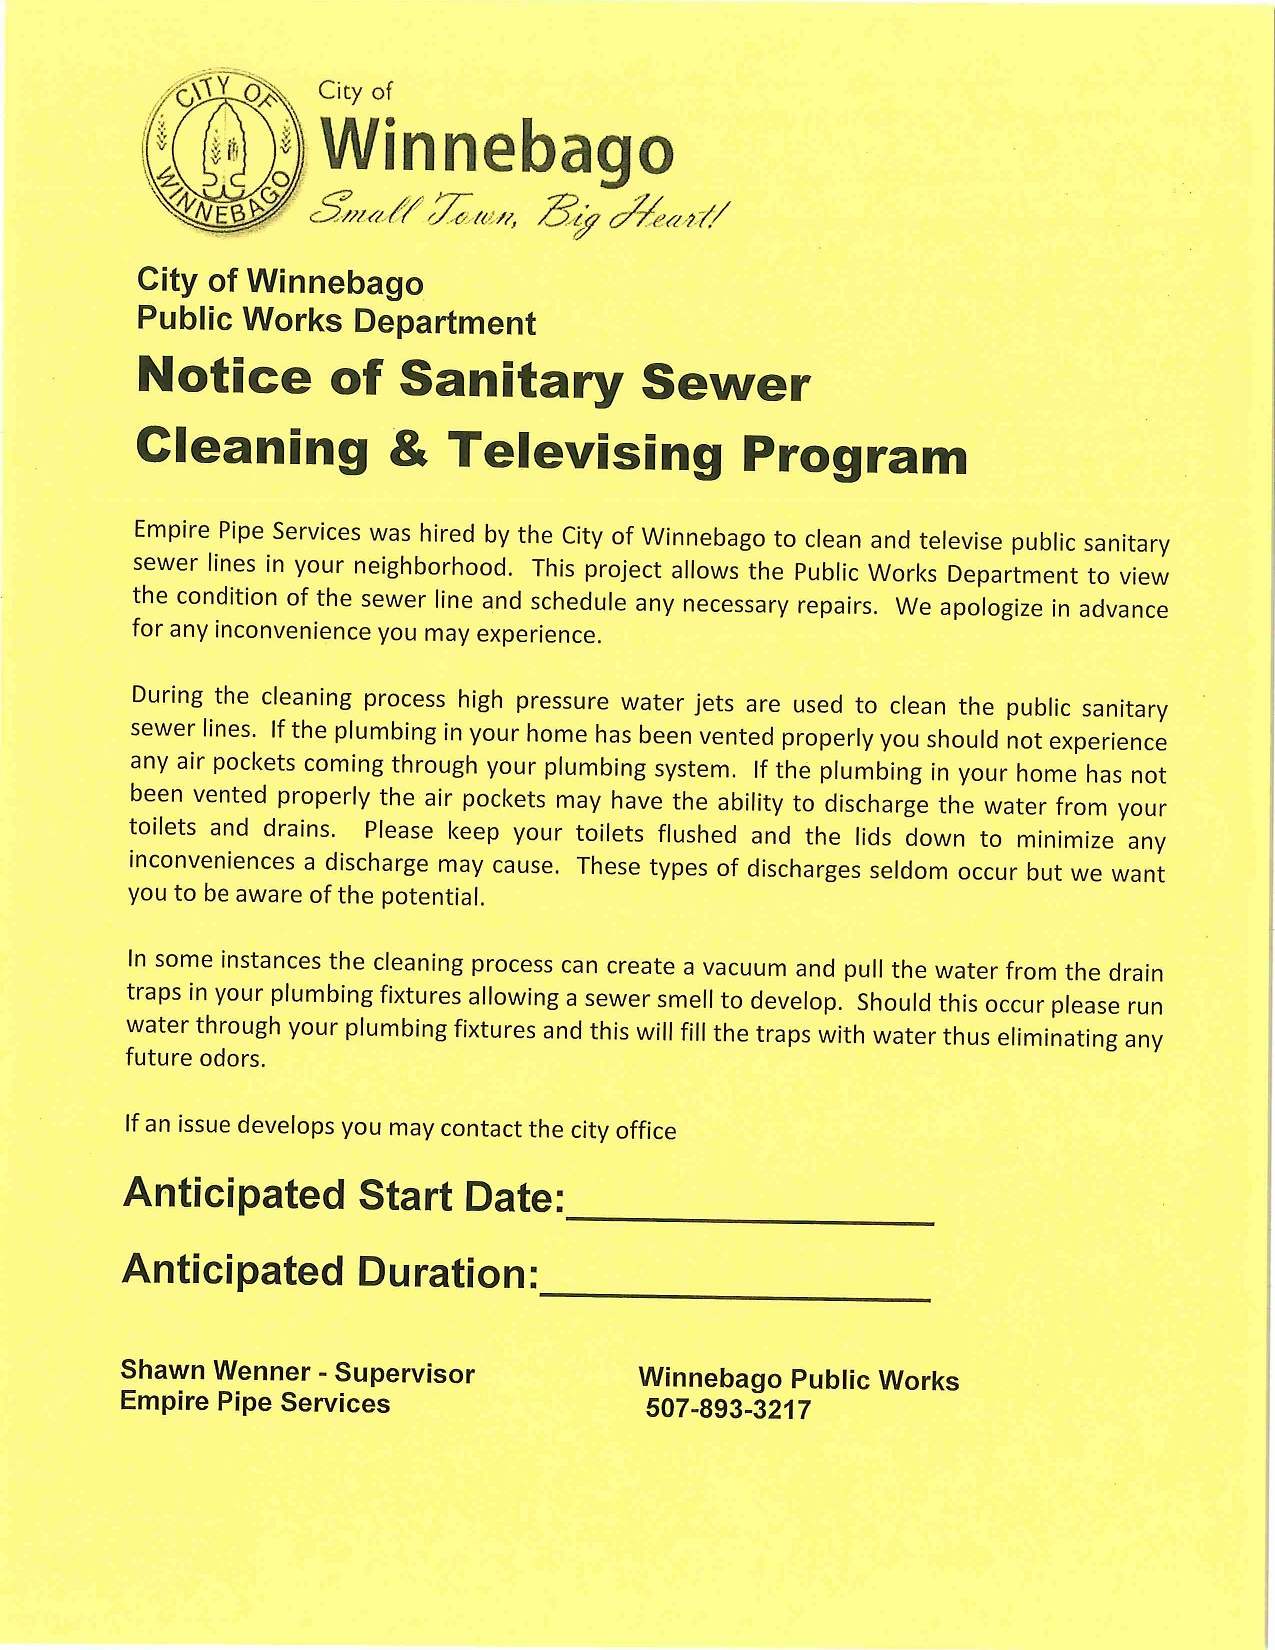 Sanitary Sewer Cleaning and Televising